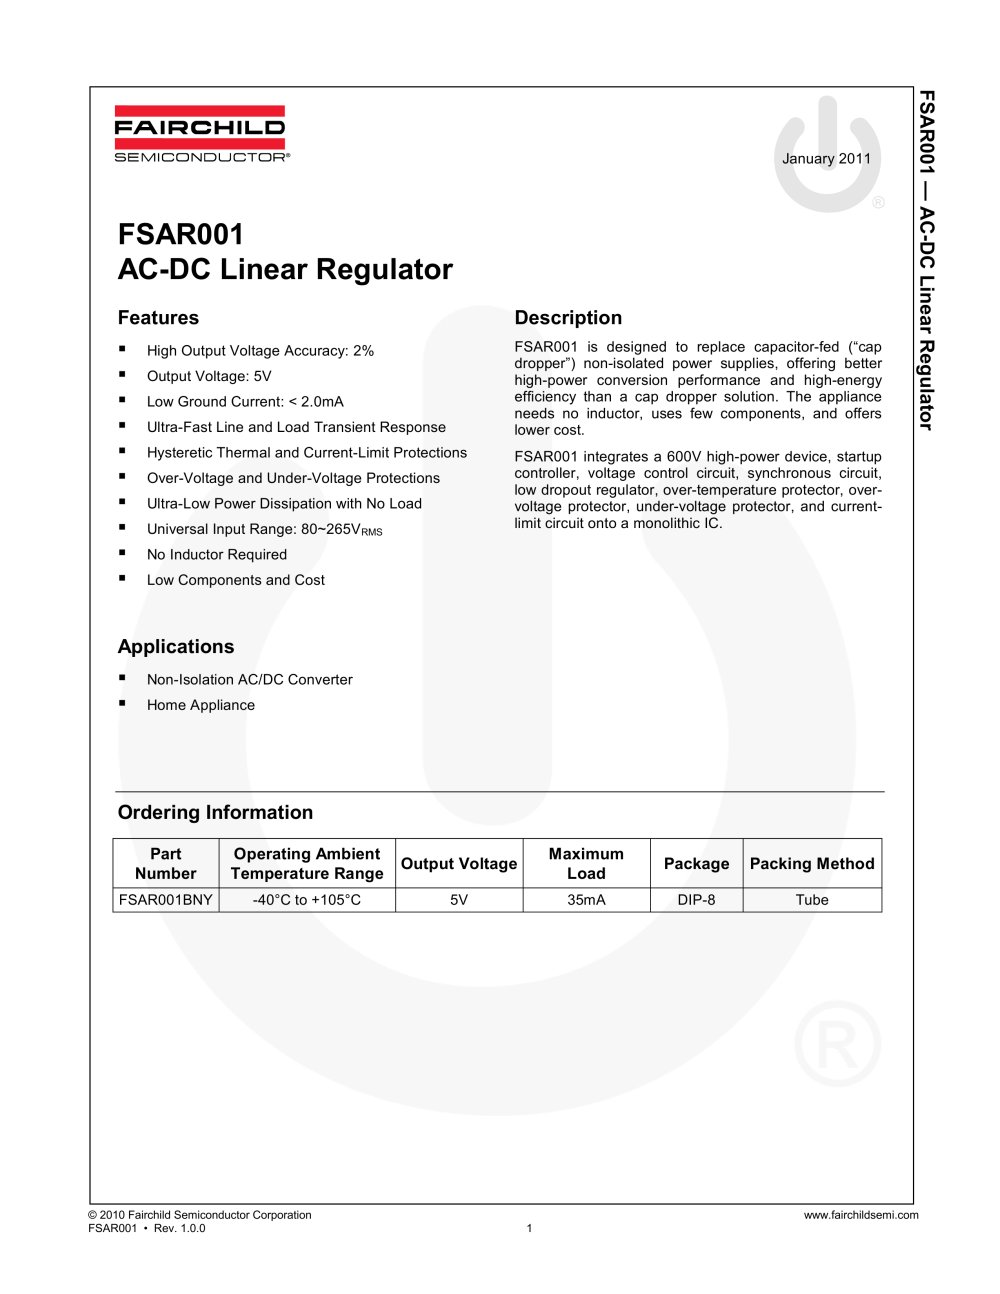 Fsar001b Ac Dc Linear Regulator Fairchild Semiconductor Pdf 5v Power Supply With Overvoltage Protection 1 12 Pages